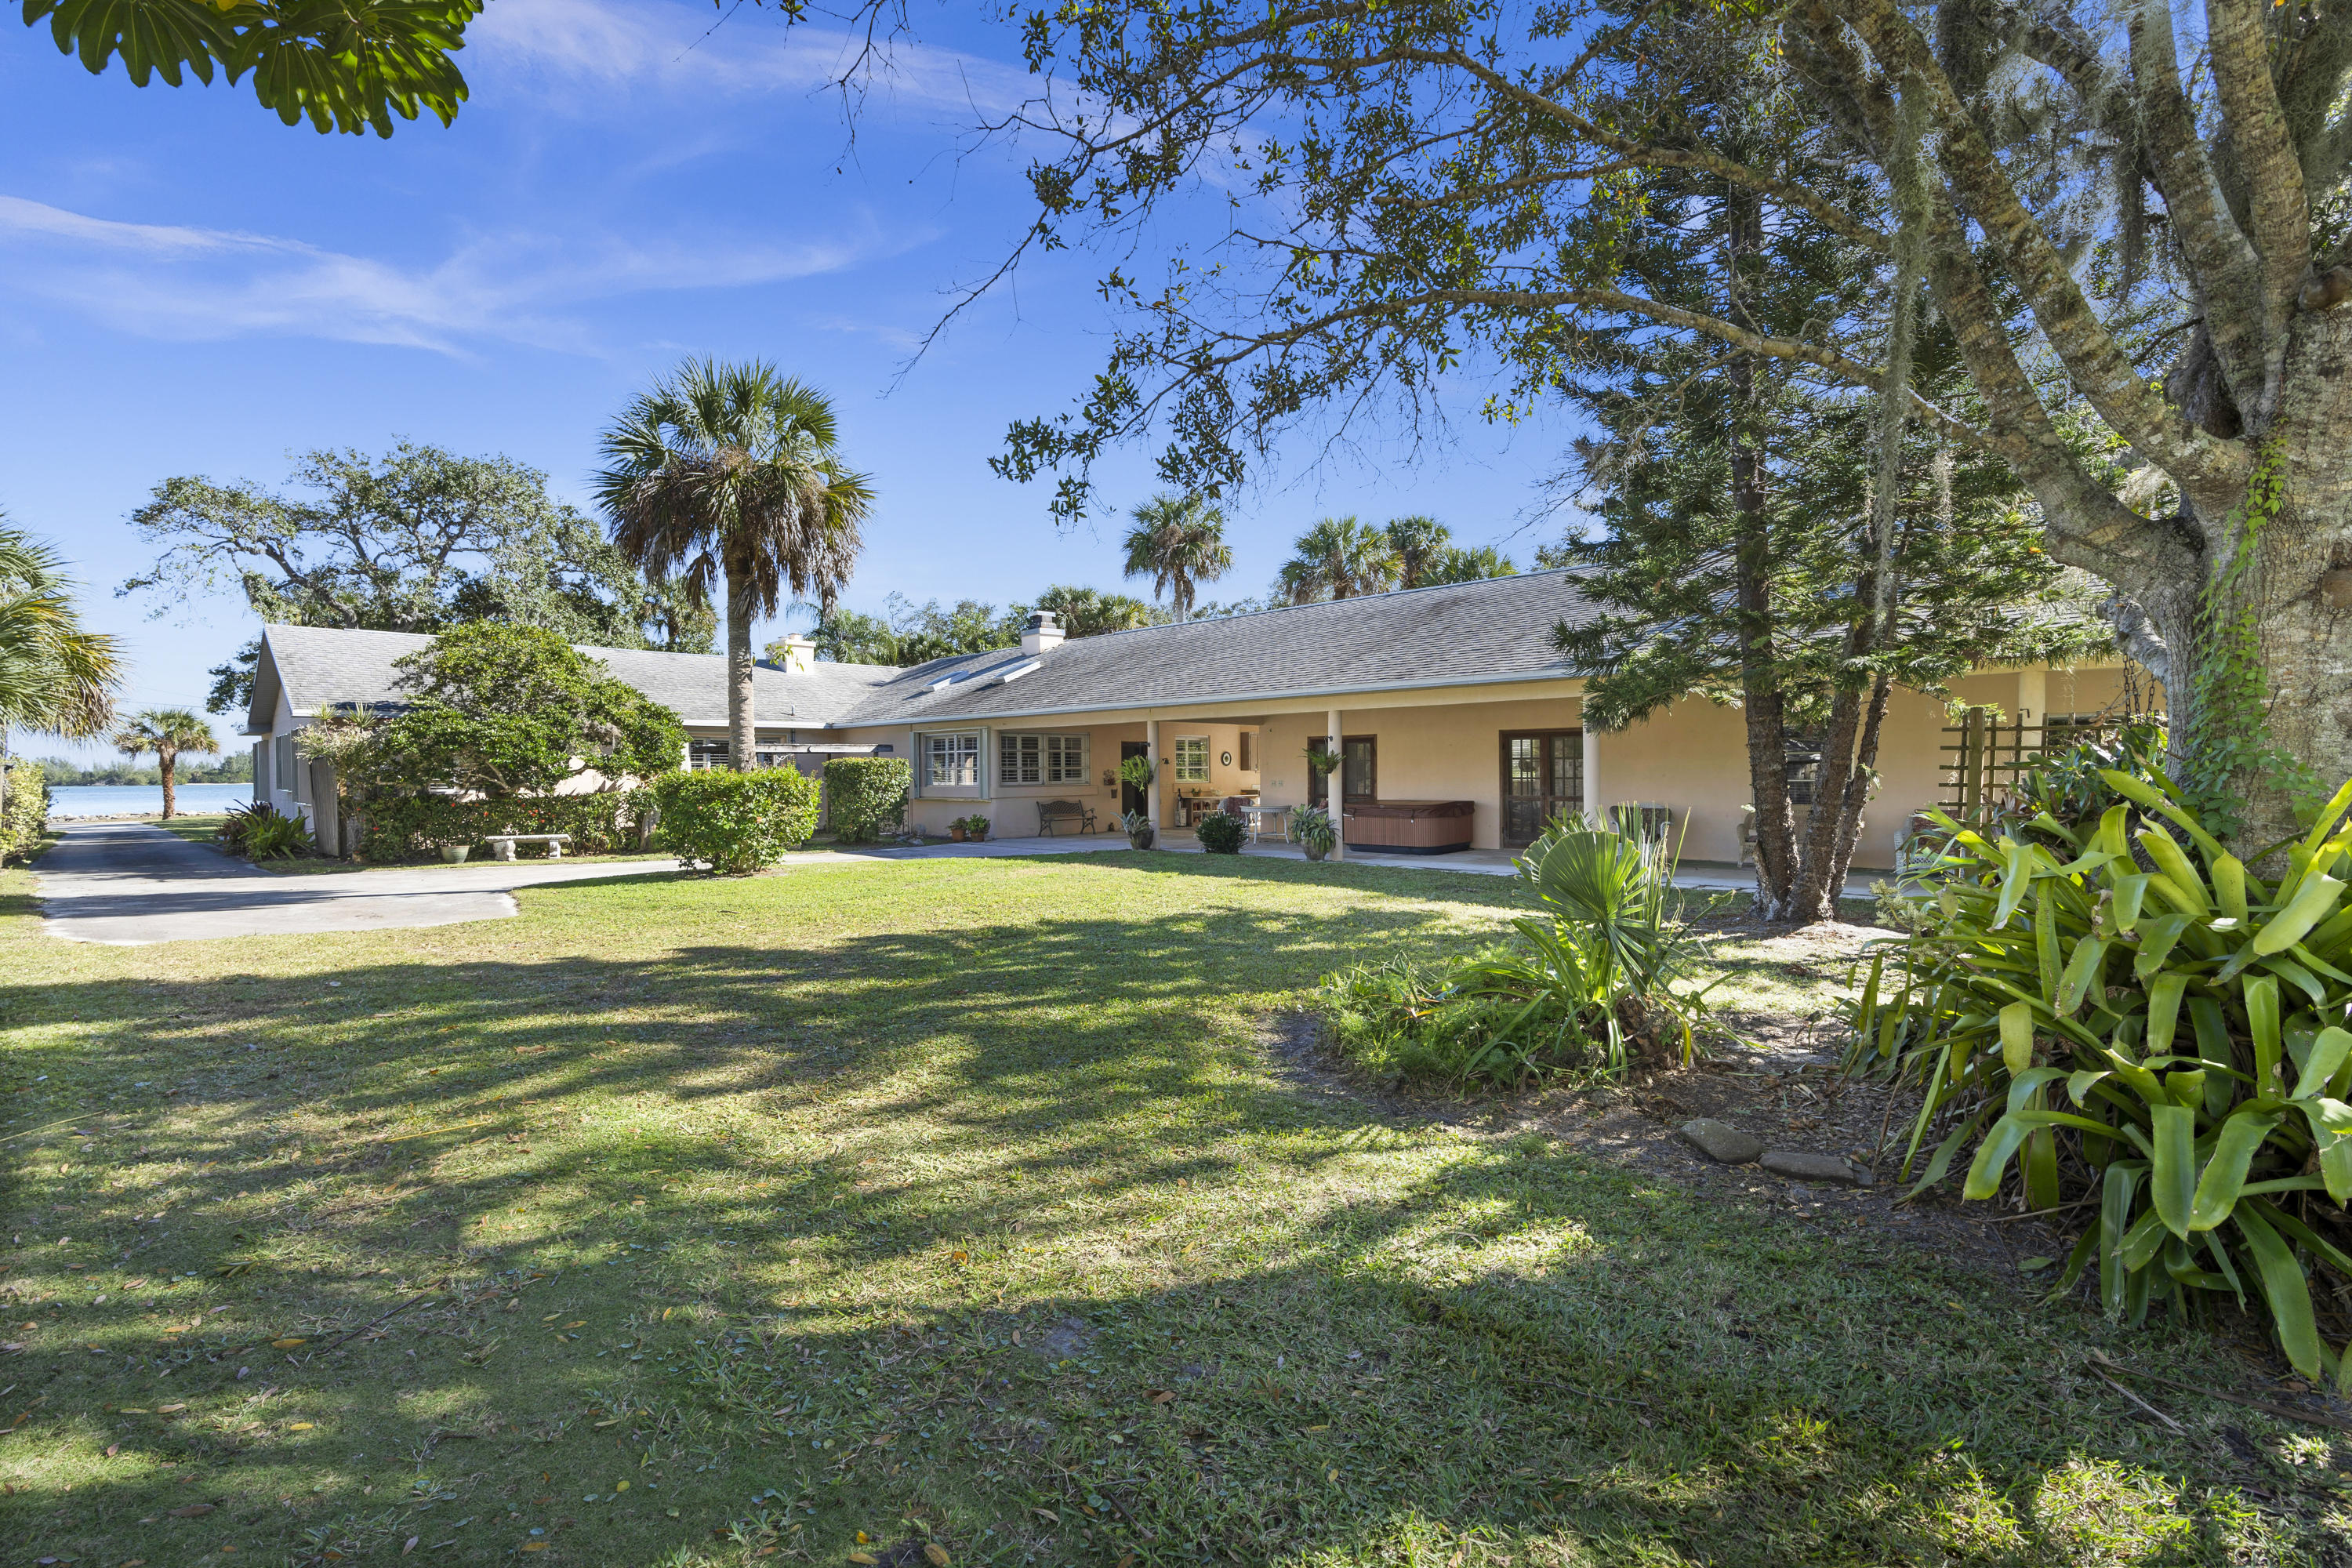 ST. LUCIE VILLAGE FORT PIERCE REAL ESTATE